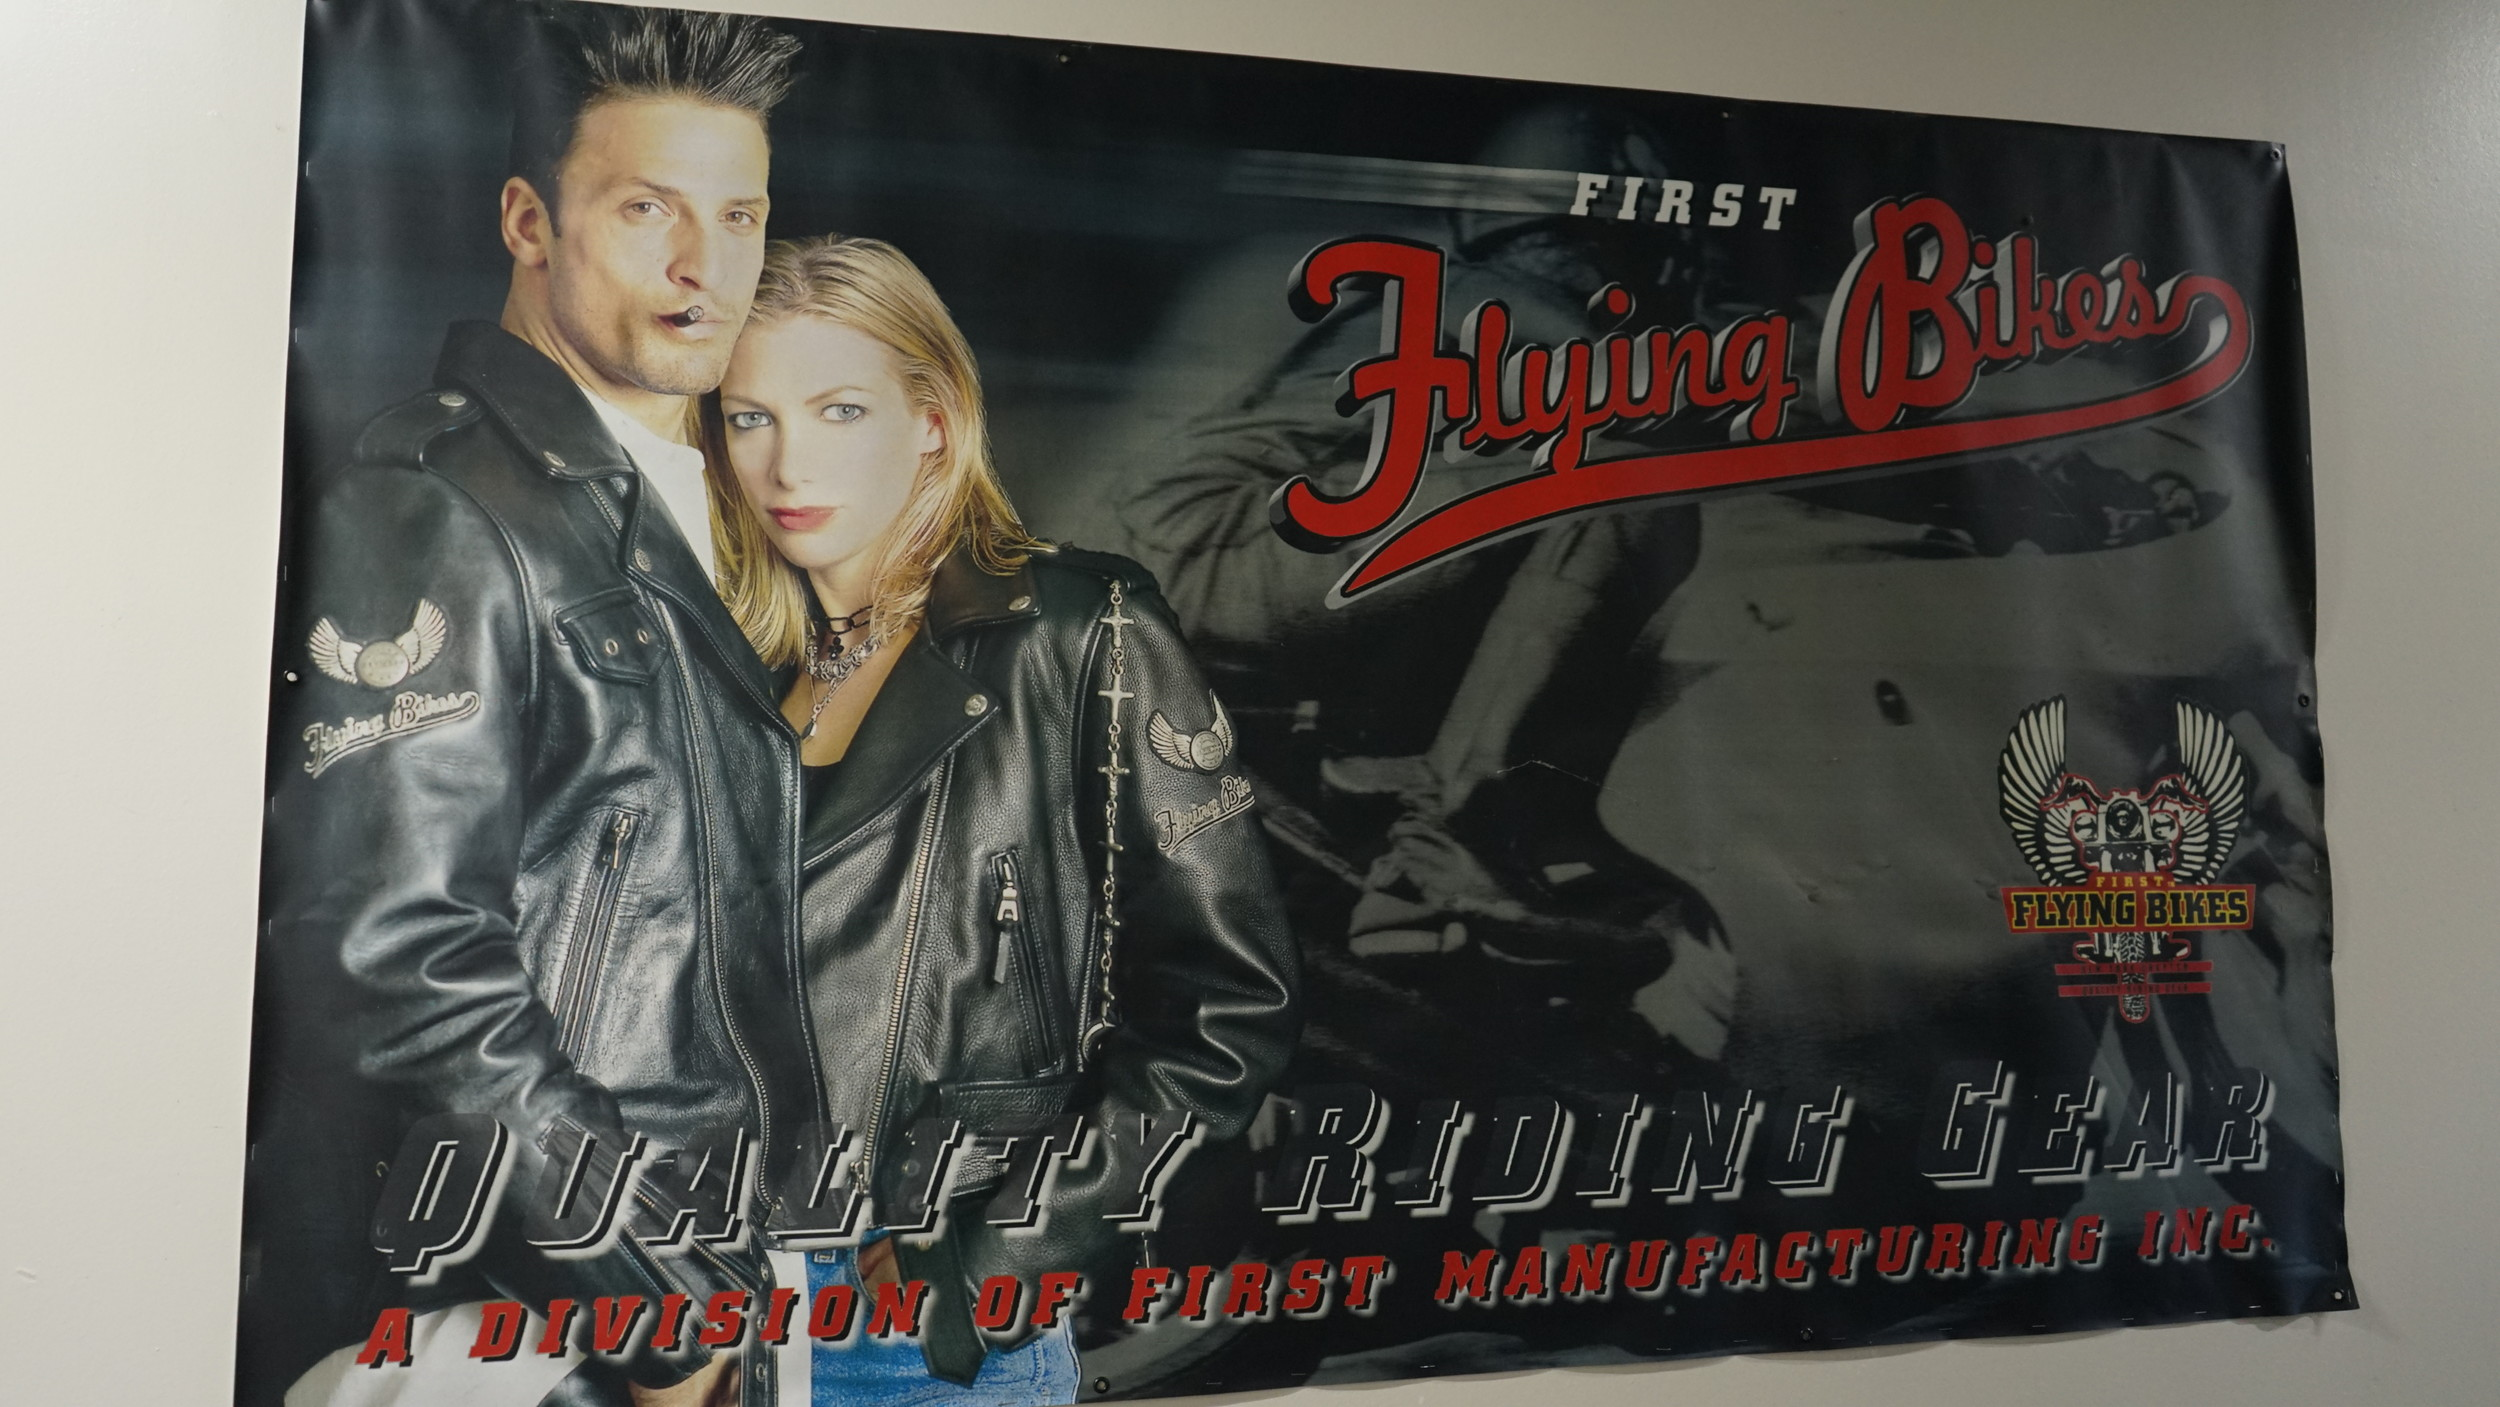 First Manufacturing entered the U.S. market in 1987 targeting American motorcycle culture. Pictured above is one of their ads from the early '90s.